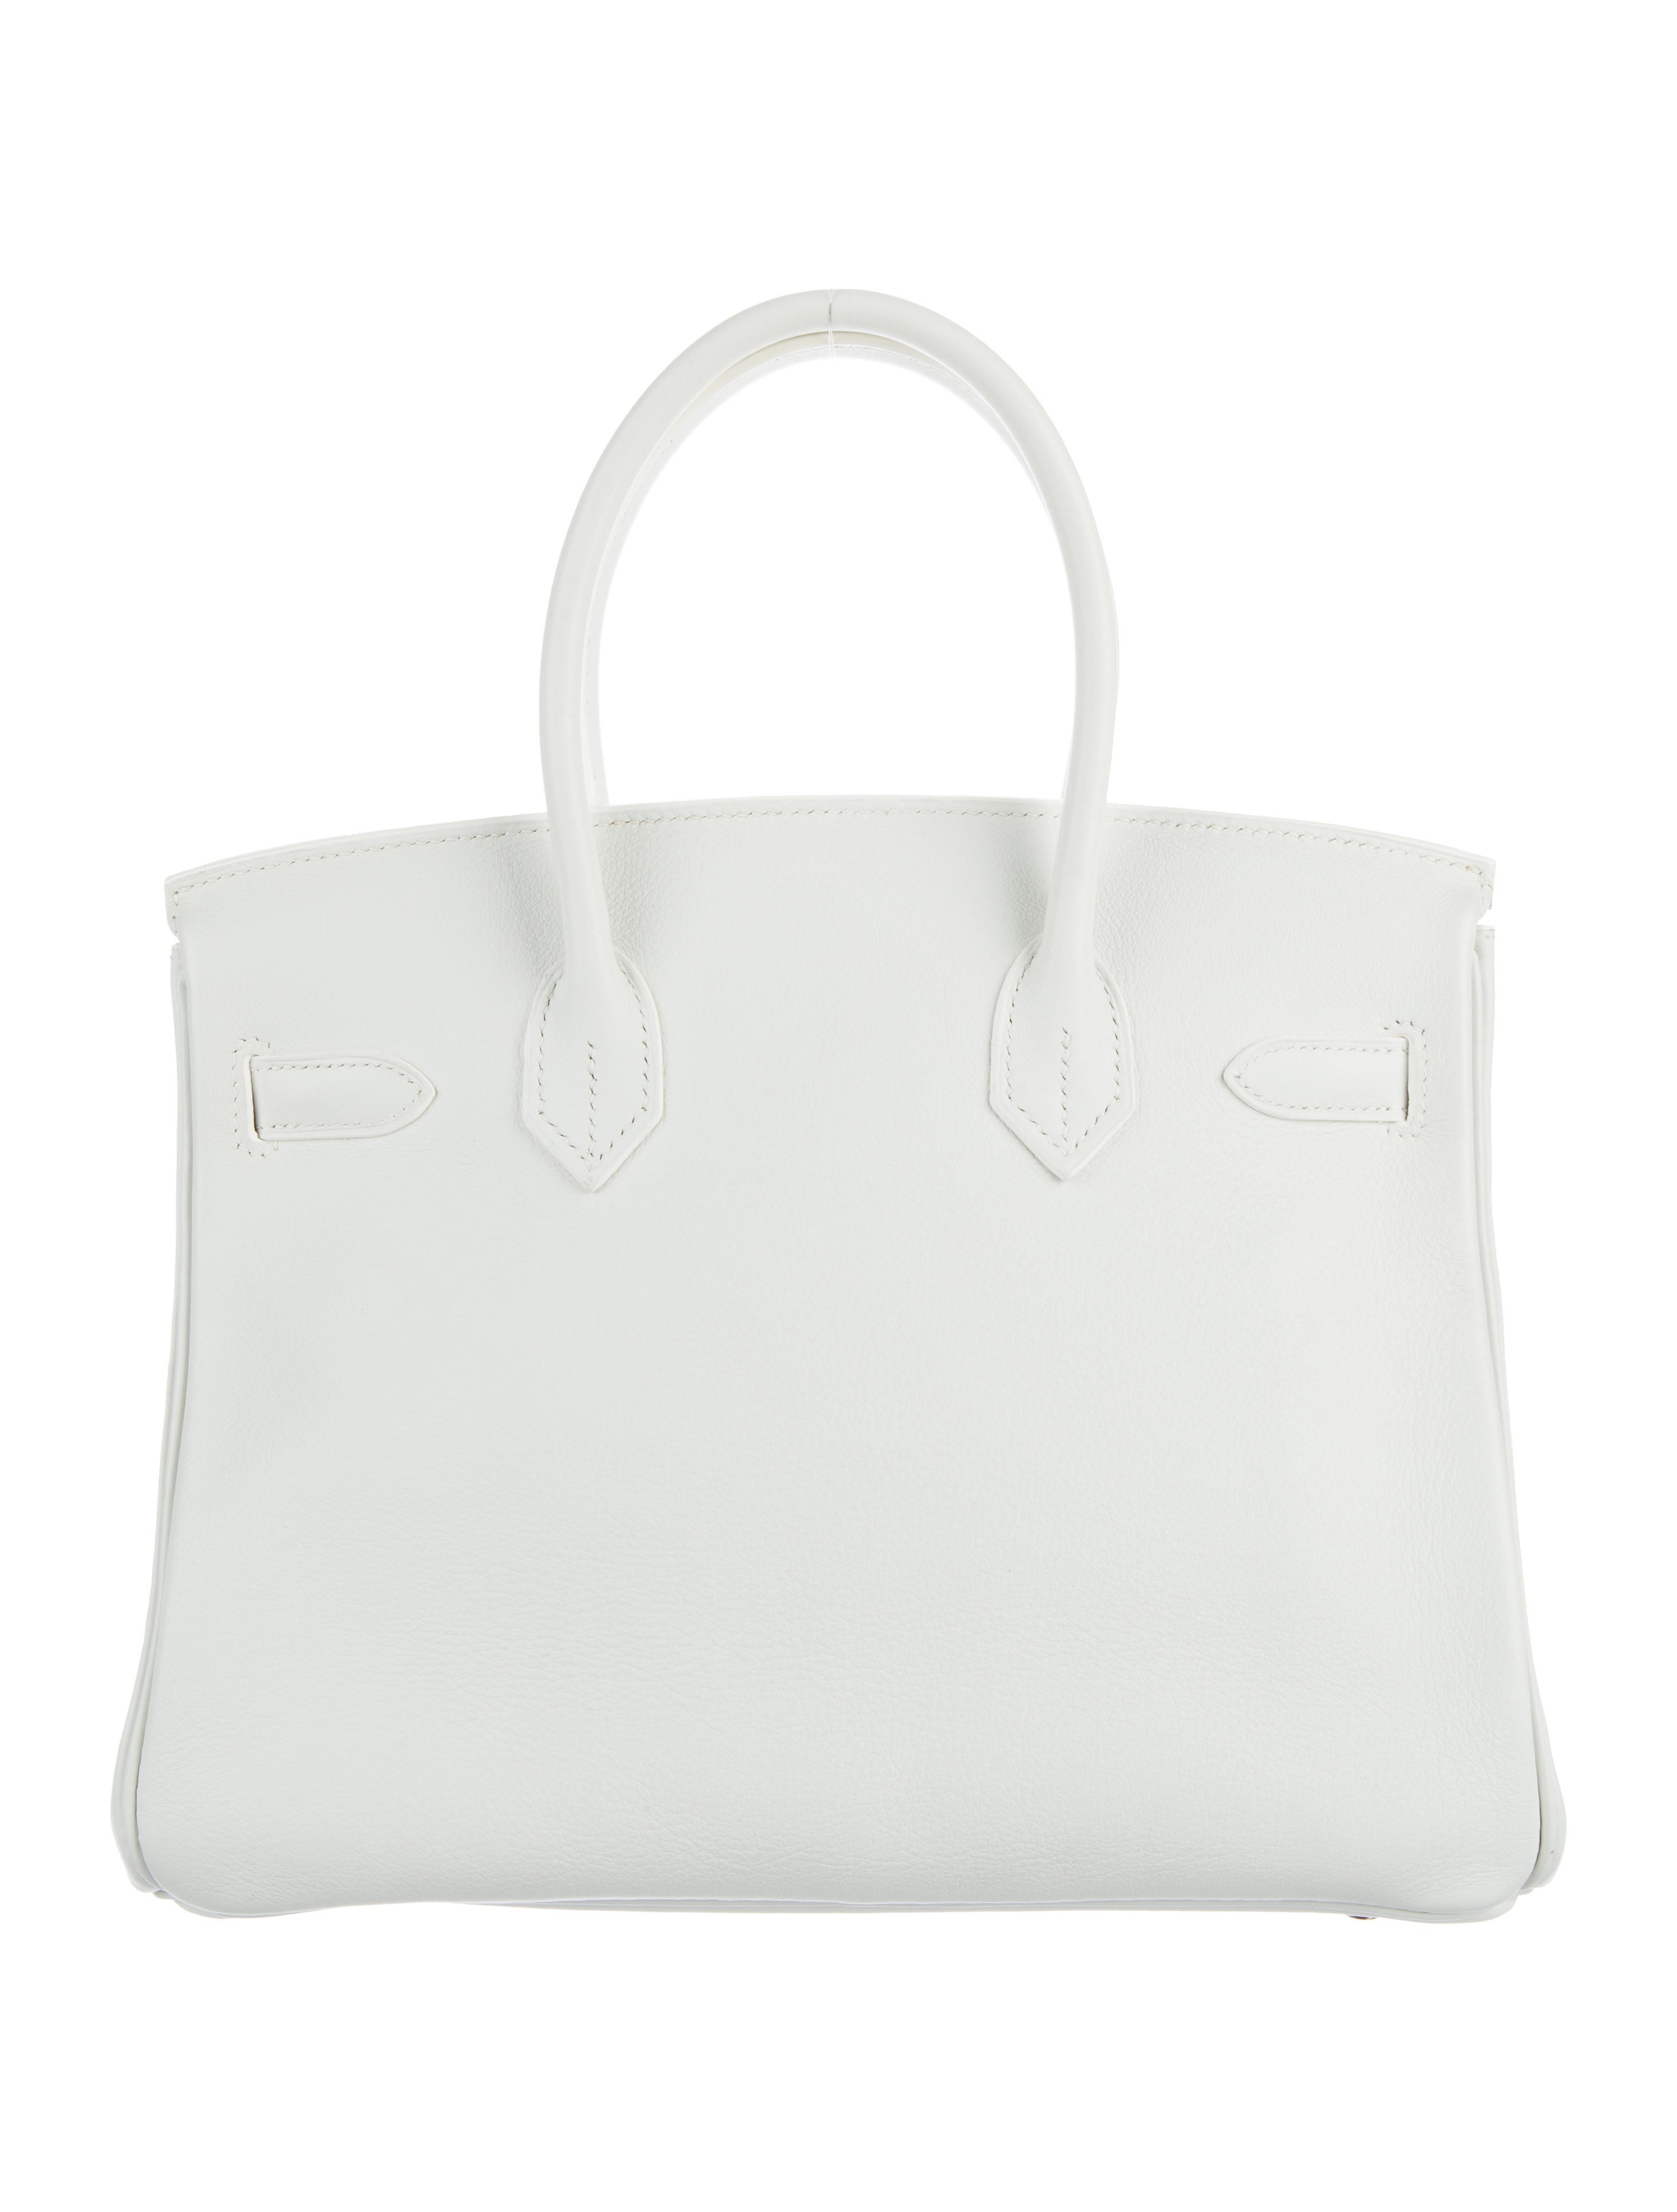 Herm232s Swift Birkin 30 Handbags HER78129 The RealReal : HER781293enlarged from www.therealreal.com size 2930 x 3865 jpeg 295kB